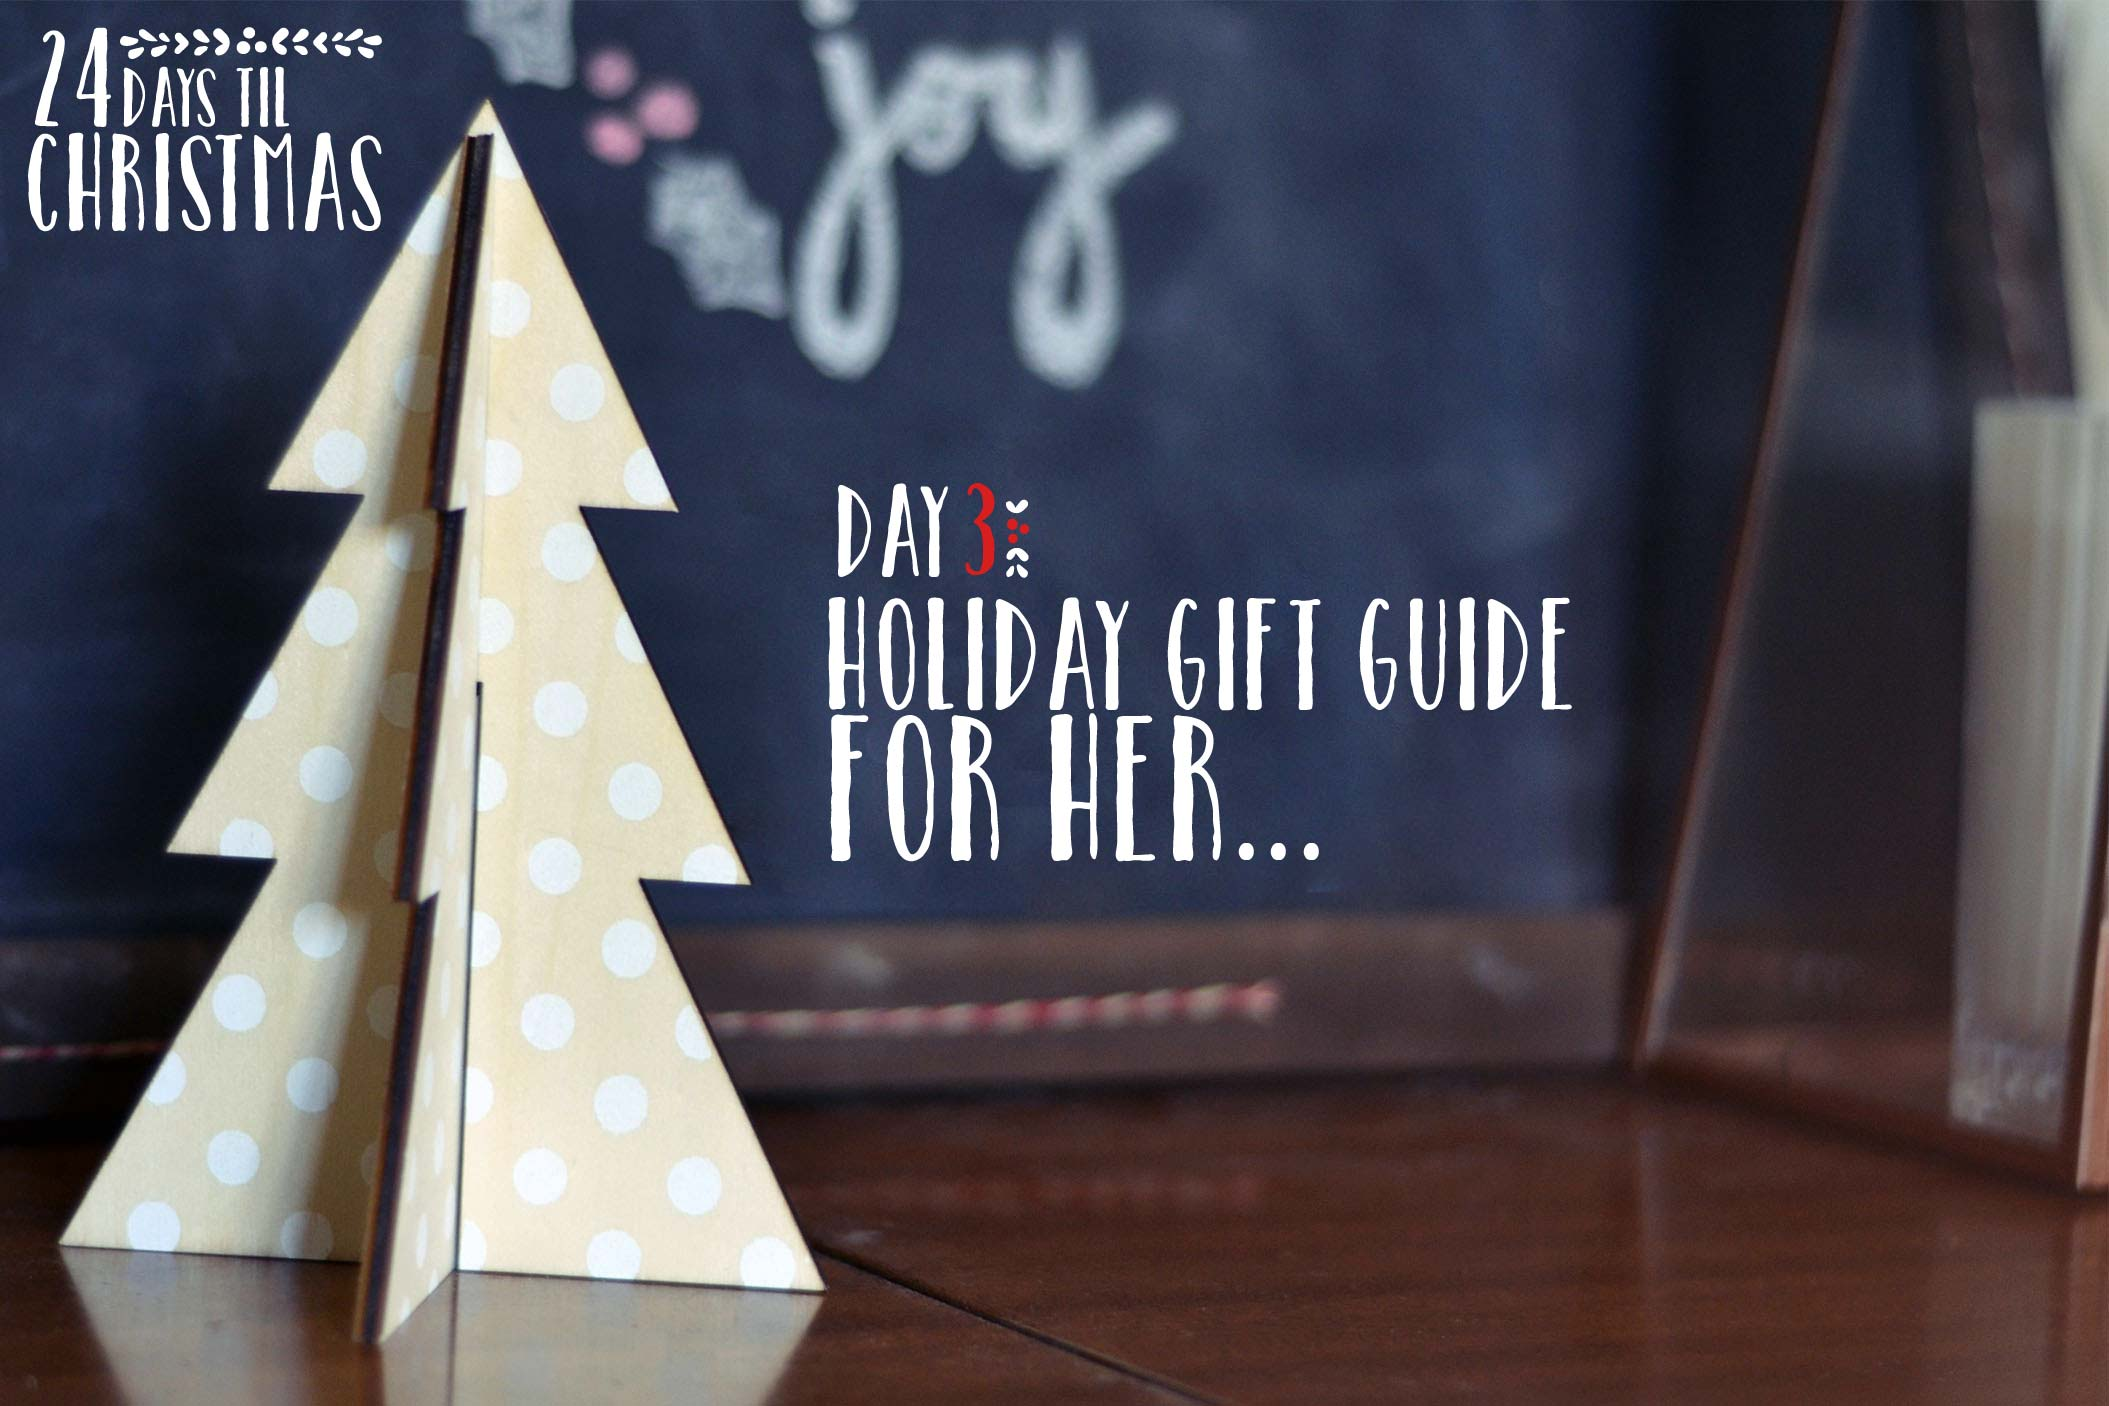 gift guide 4 he coverr-01-01